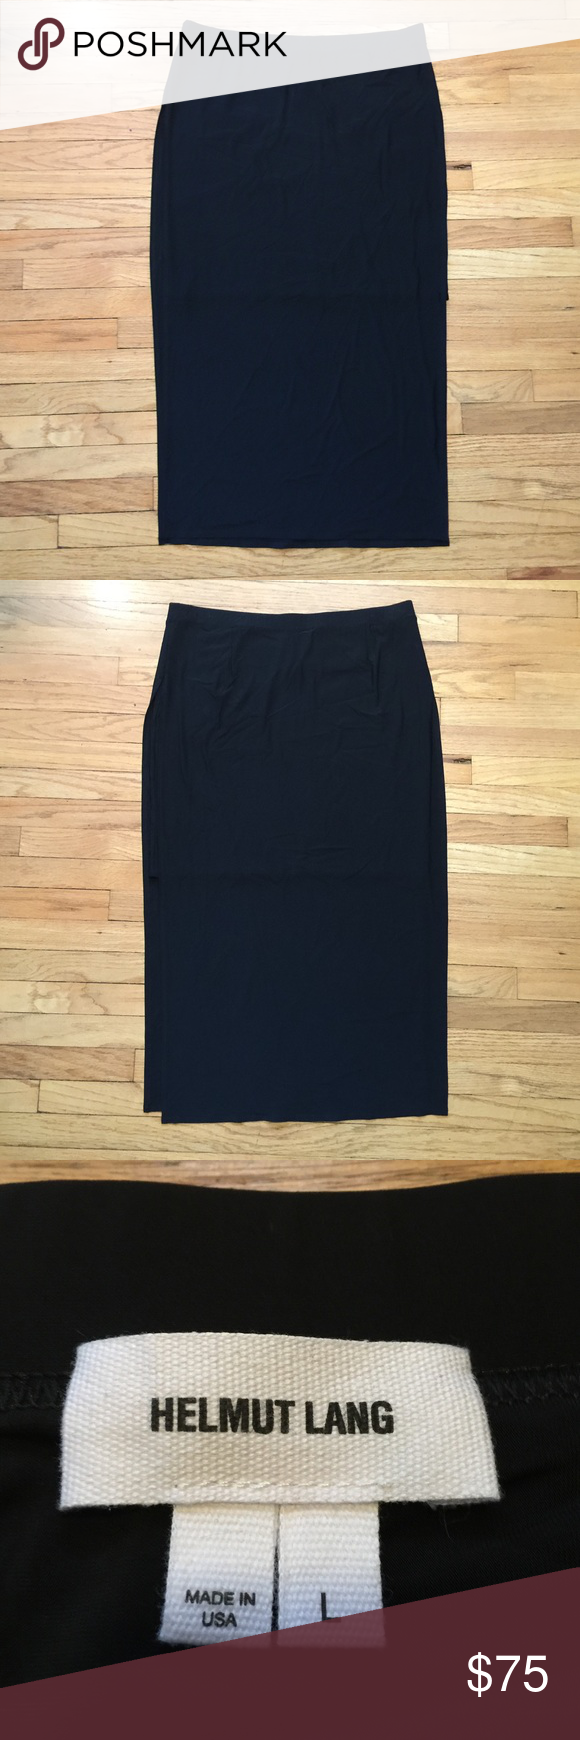 Helmet Lang black skirt w/ sexy slit - sz large Helmet Lang black skirt w/ sexy slit - sz large. Goes to midcalf. Has a shorter underskirt, with a sexy long slit. Waist - 17 inches. Length - 35 inches. Excellent condition. Helmut Lang Skirts Maxi